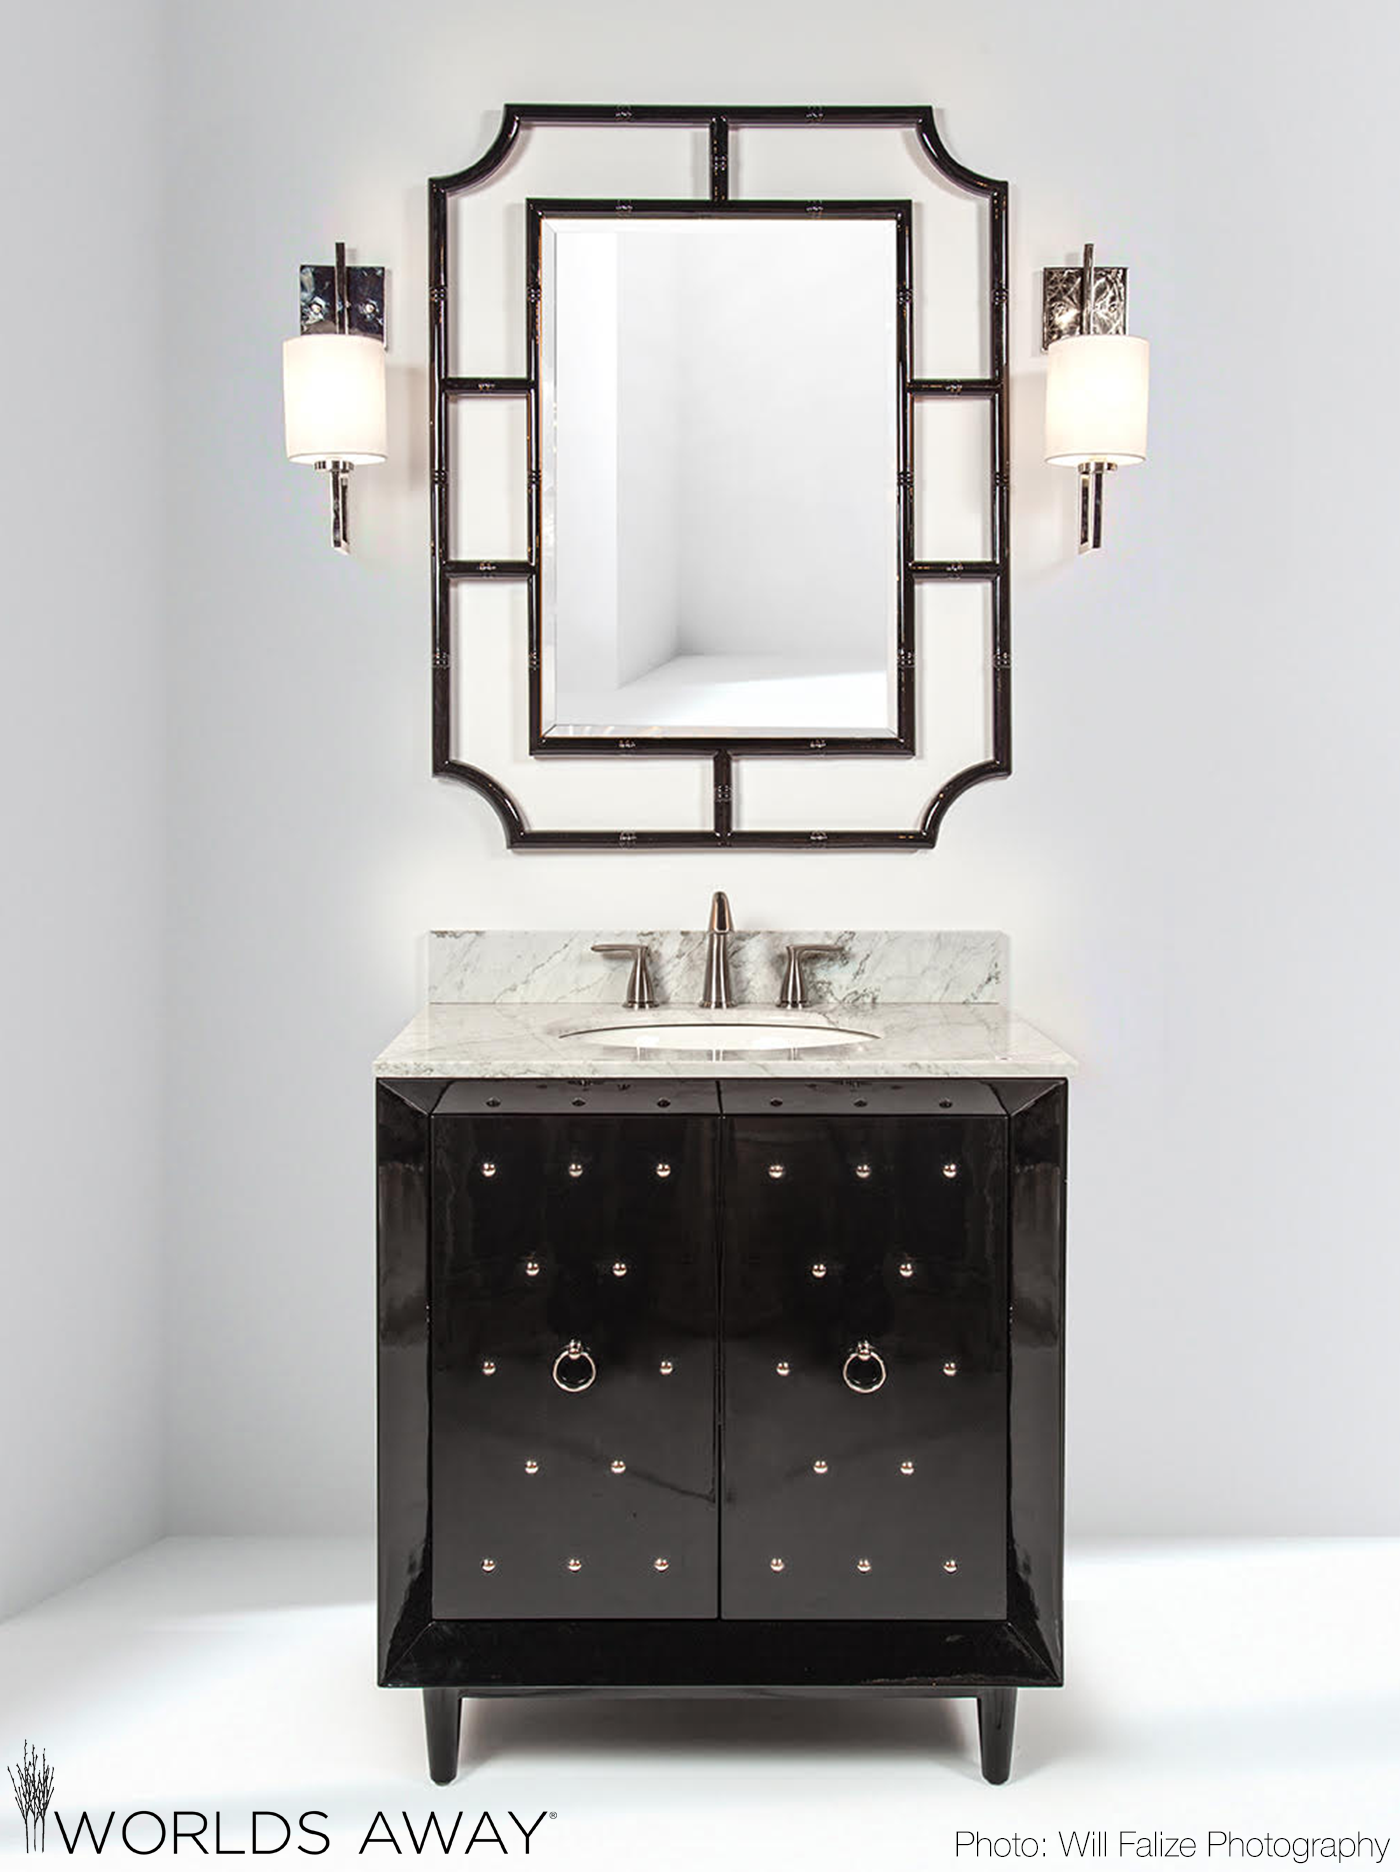 Worldsawaydecor S New Bath Collection Davin Bath Vanity In Black Lacquer With Nickel Hardware And Marble Top Vanity Bath Vanities Bathroom Interior Design